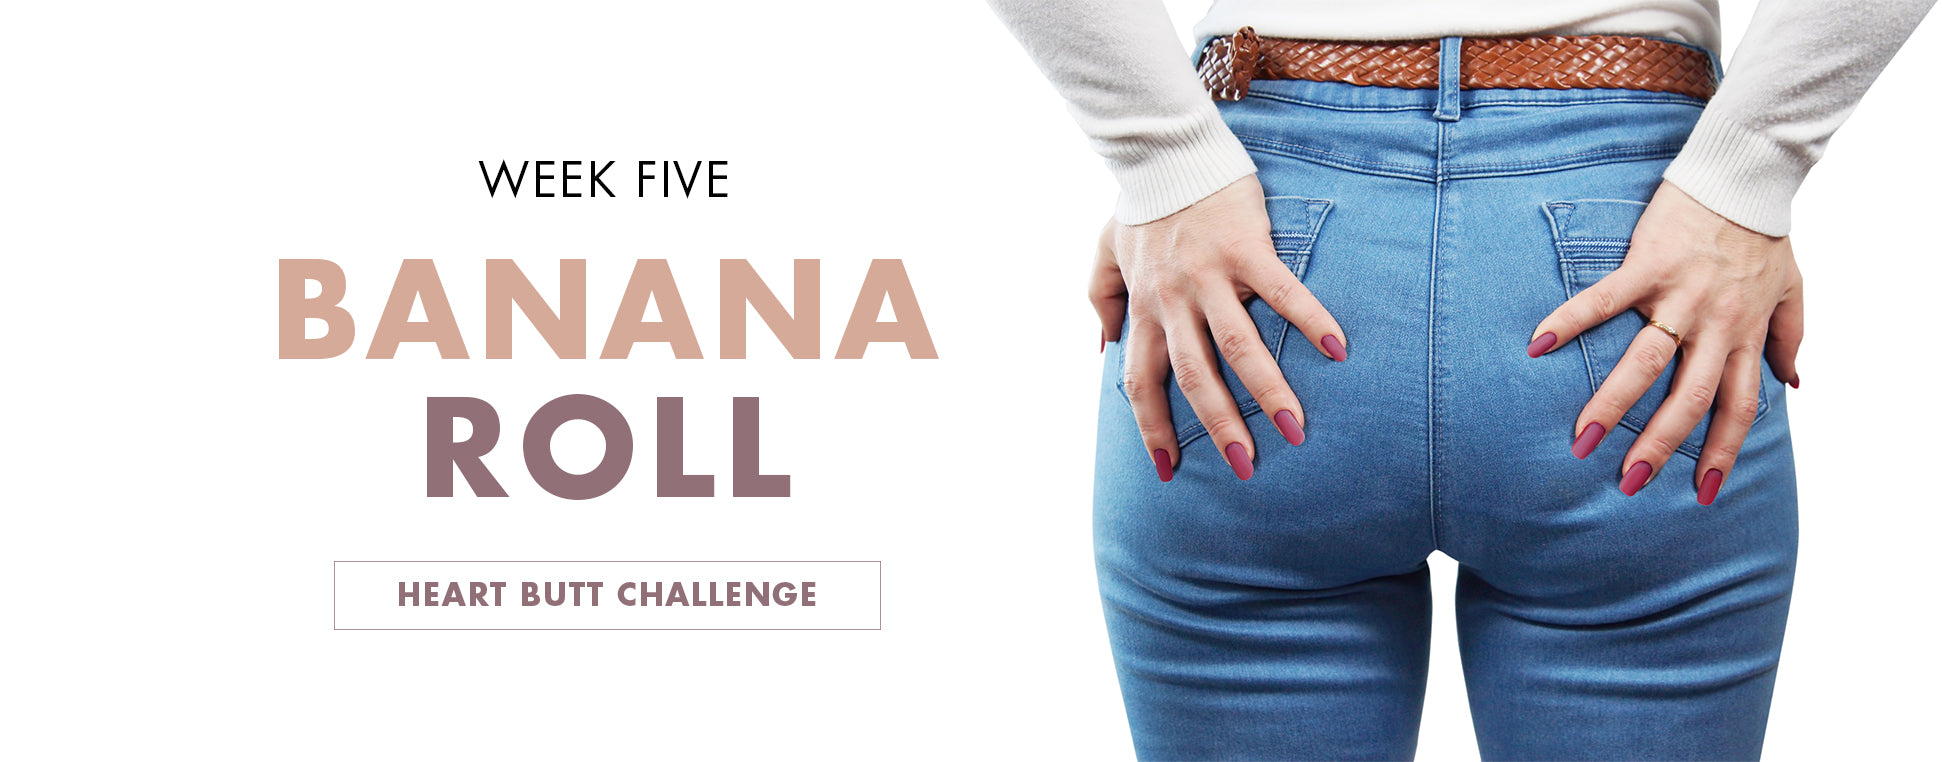 Heart Butt Challenge - Week 3, FasciaBlaster Routine Heading